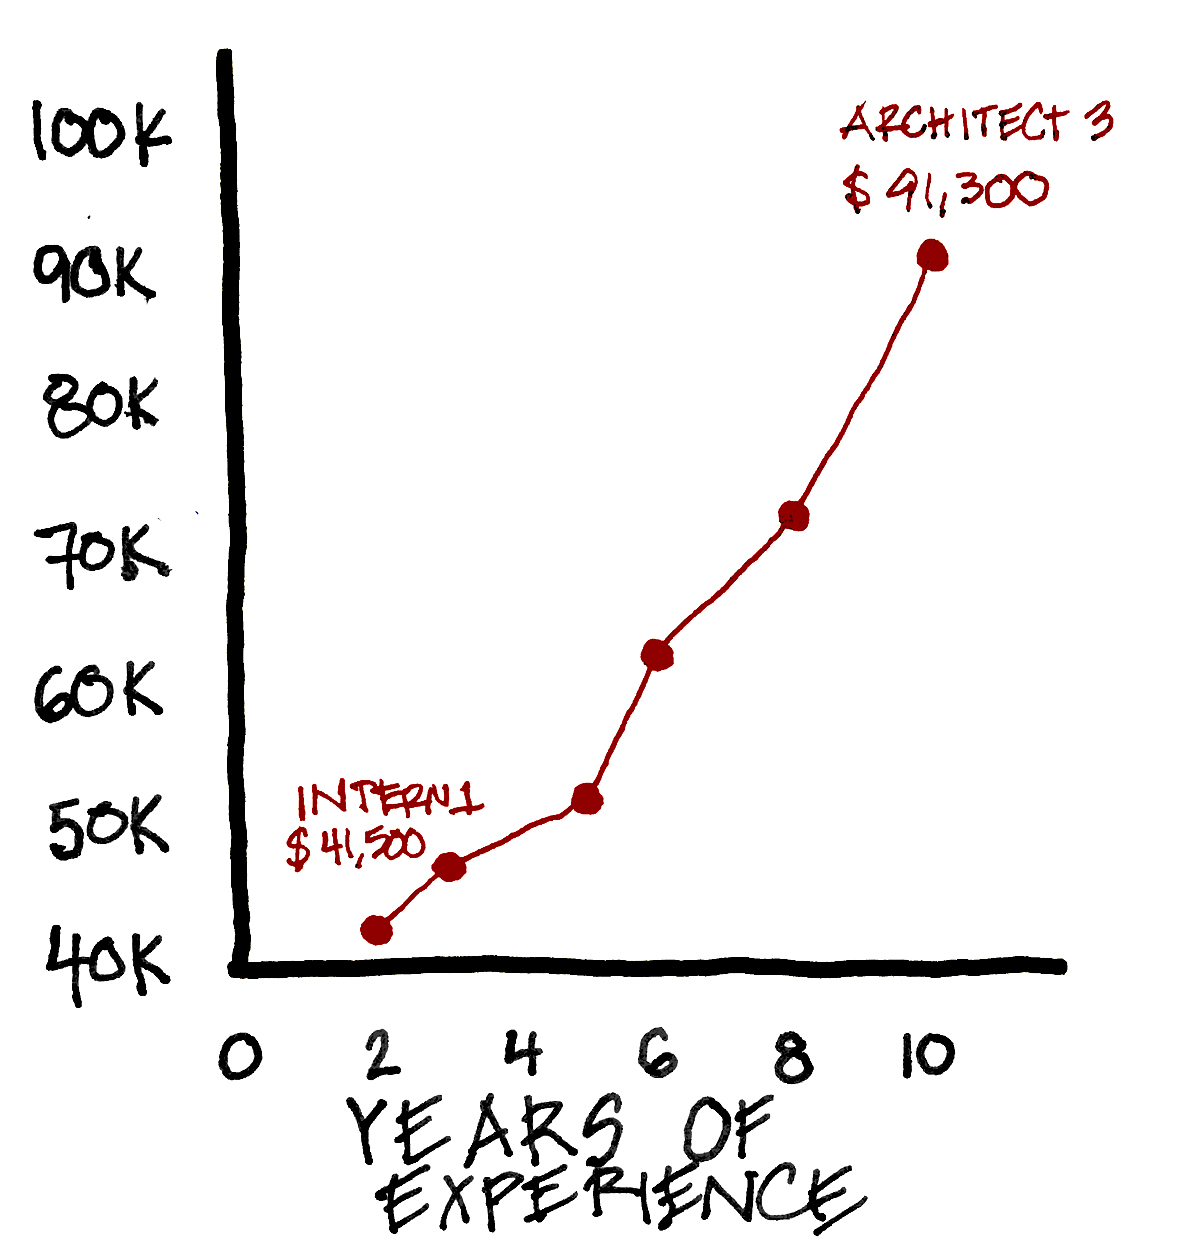 Figure 5.1 - Architecture Salary Graph - Graph created using data from the 2015 AIA Compensation Survey Salary Calculator.  The published version of this book will feature many hand drawings.